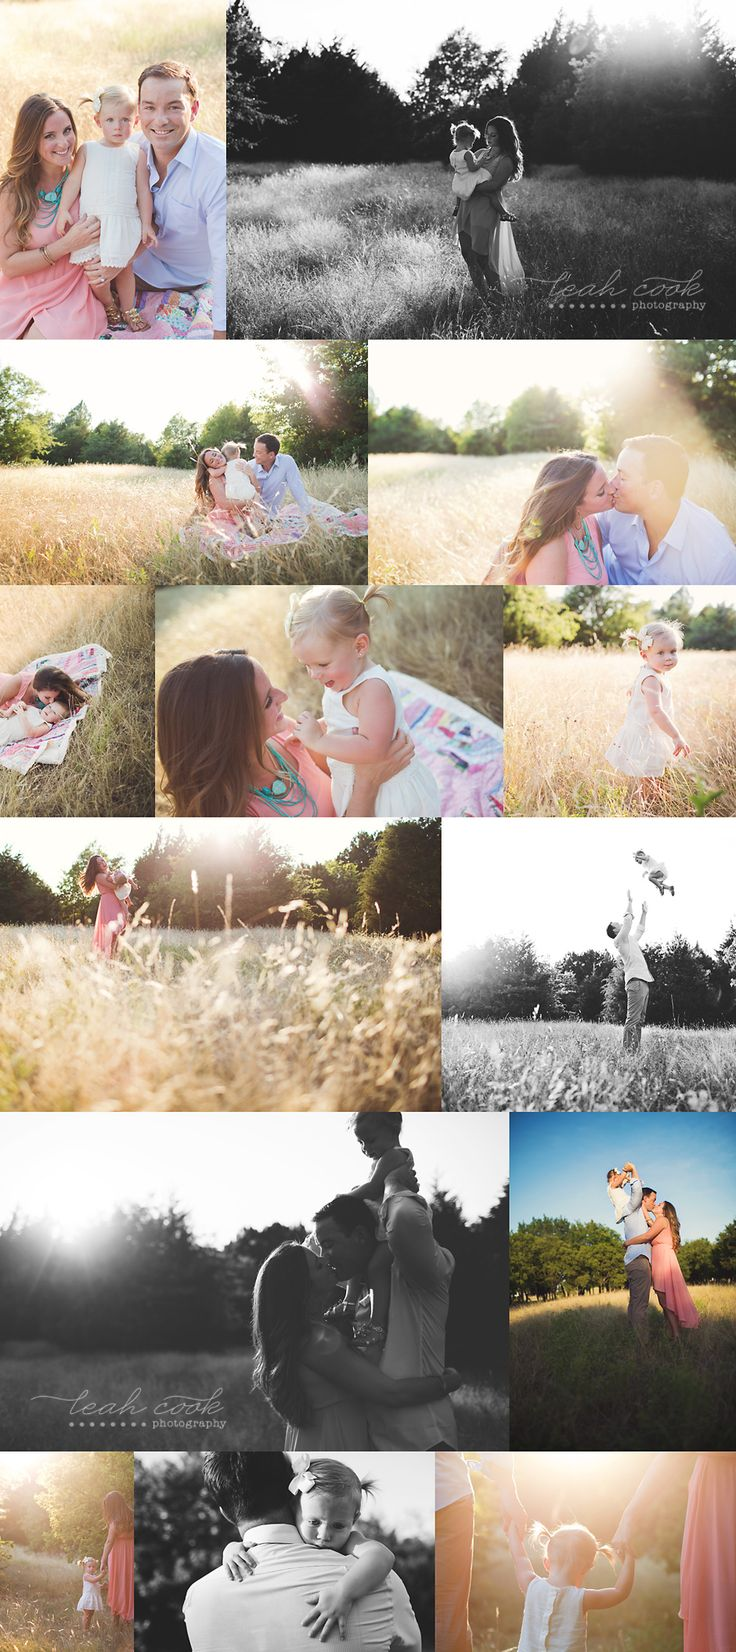 leah cook | family - could use these poses with maternity pictures